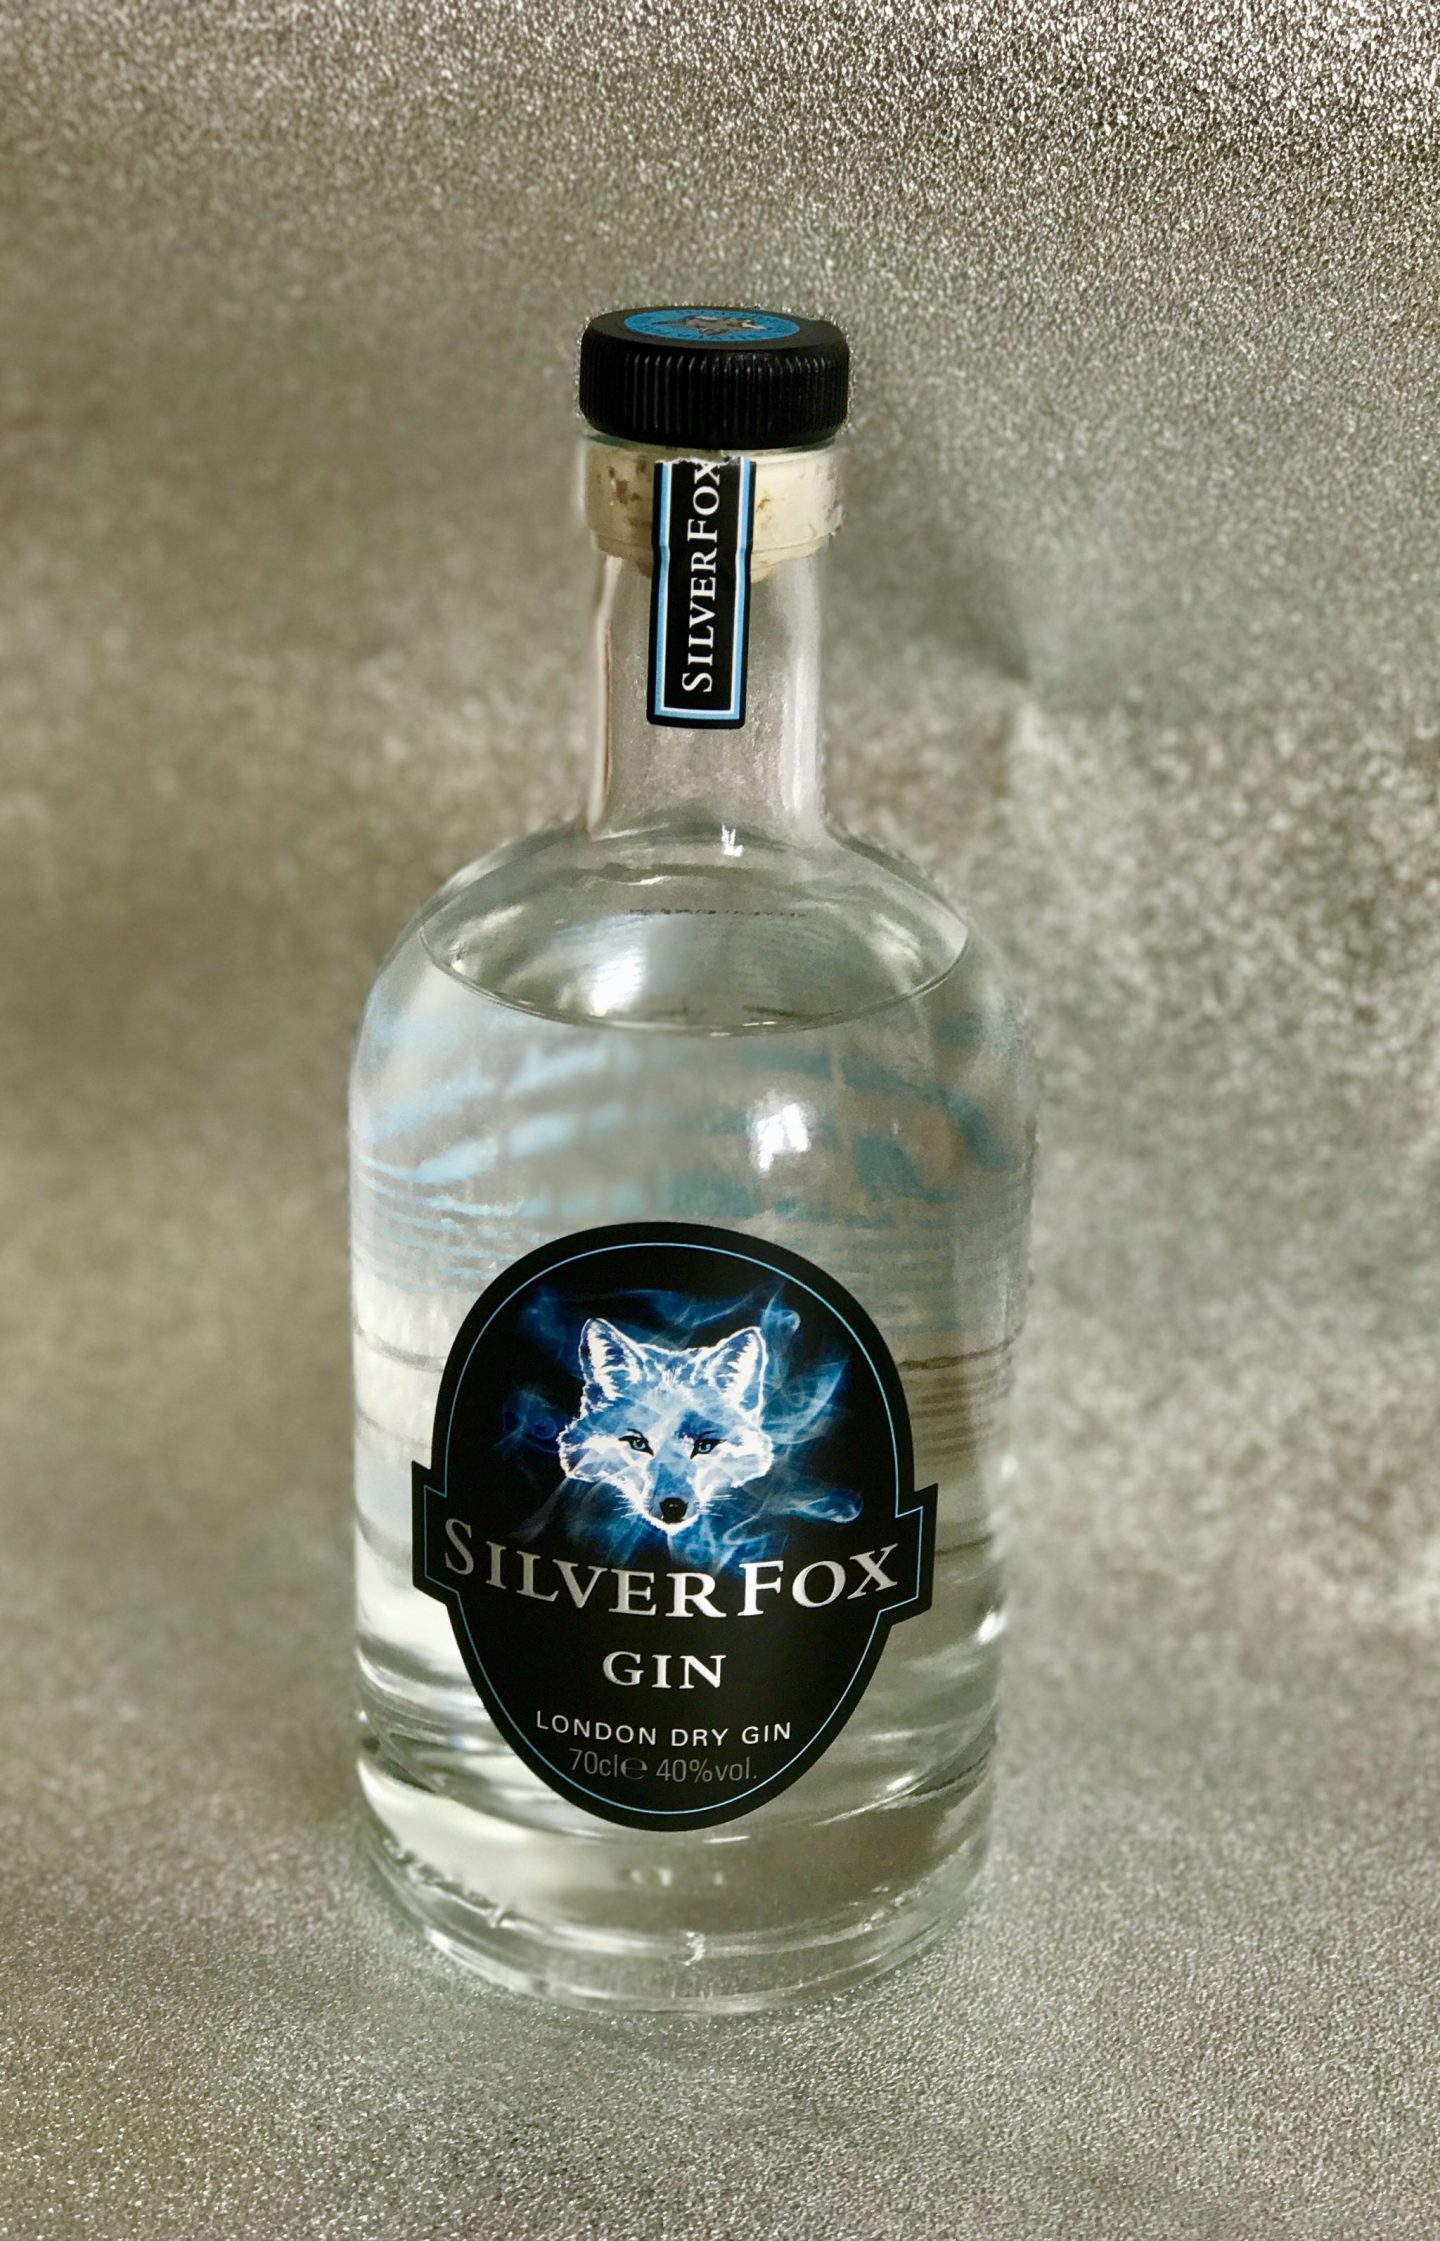 There's a new Gin…made in my town! Silver Fox Gin!